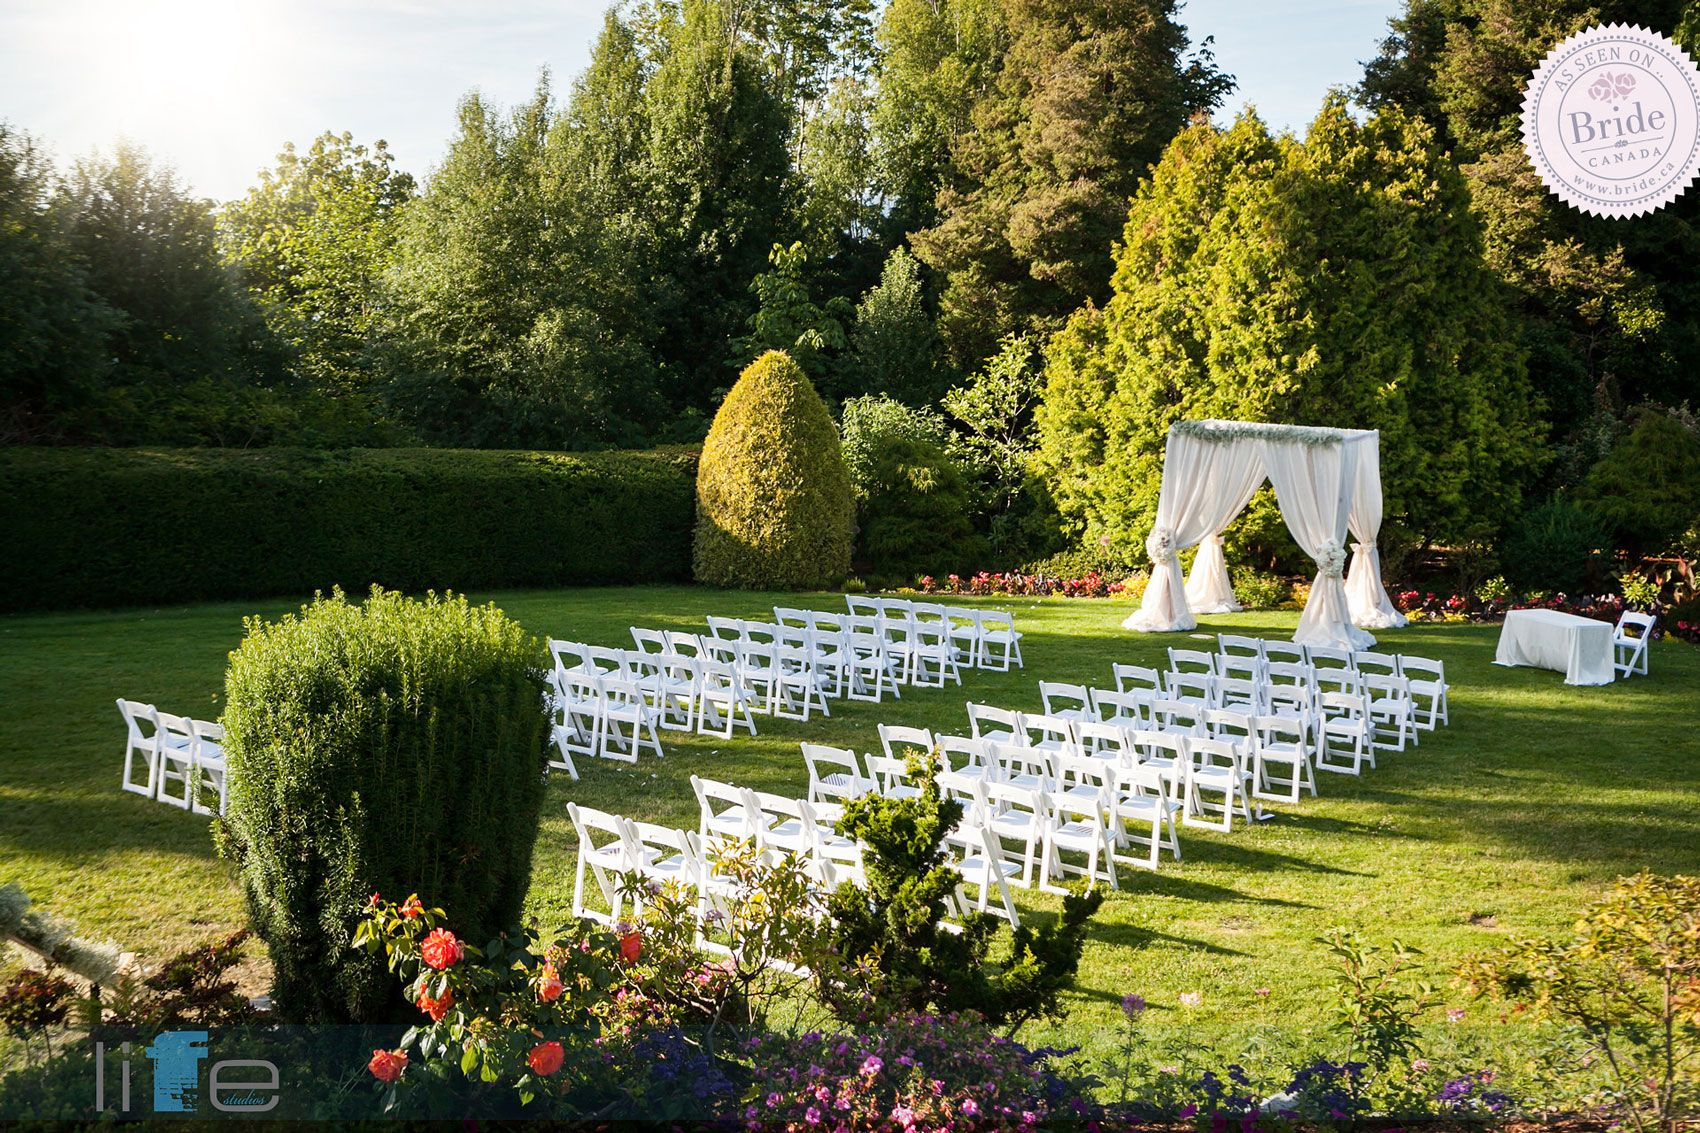 Outdoor Wedding Ceremony Locations: The Beautiful Grounds Of Cecil Green Park House Offer One